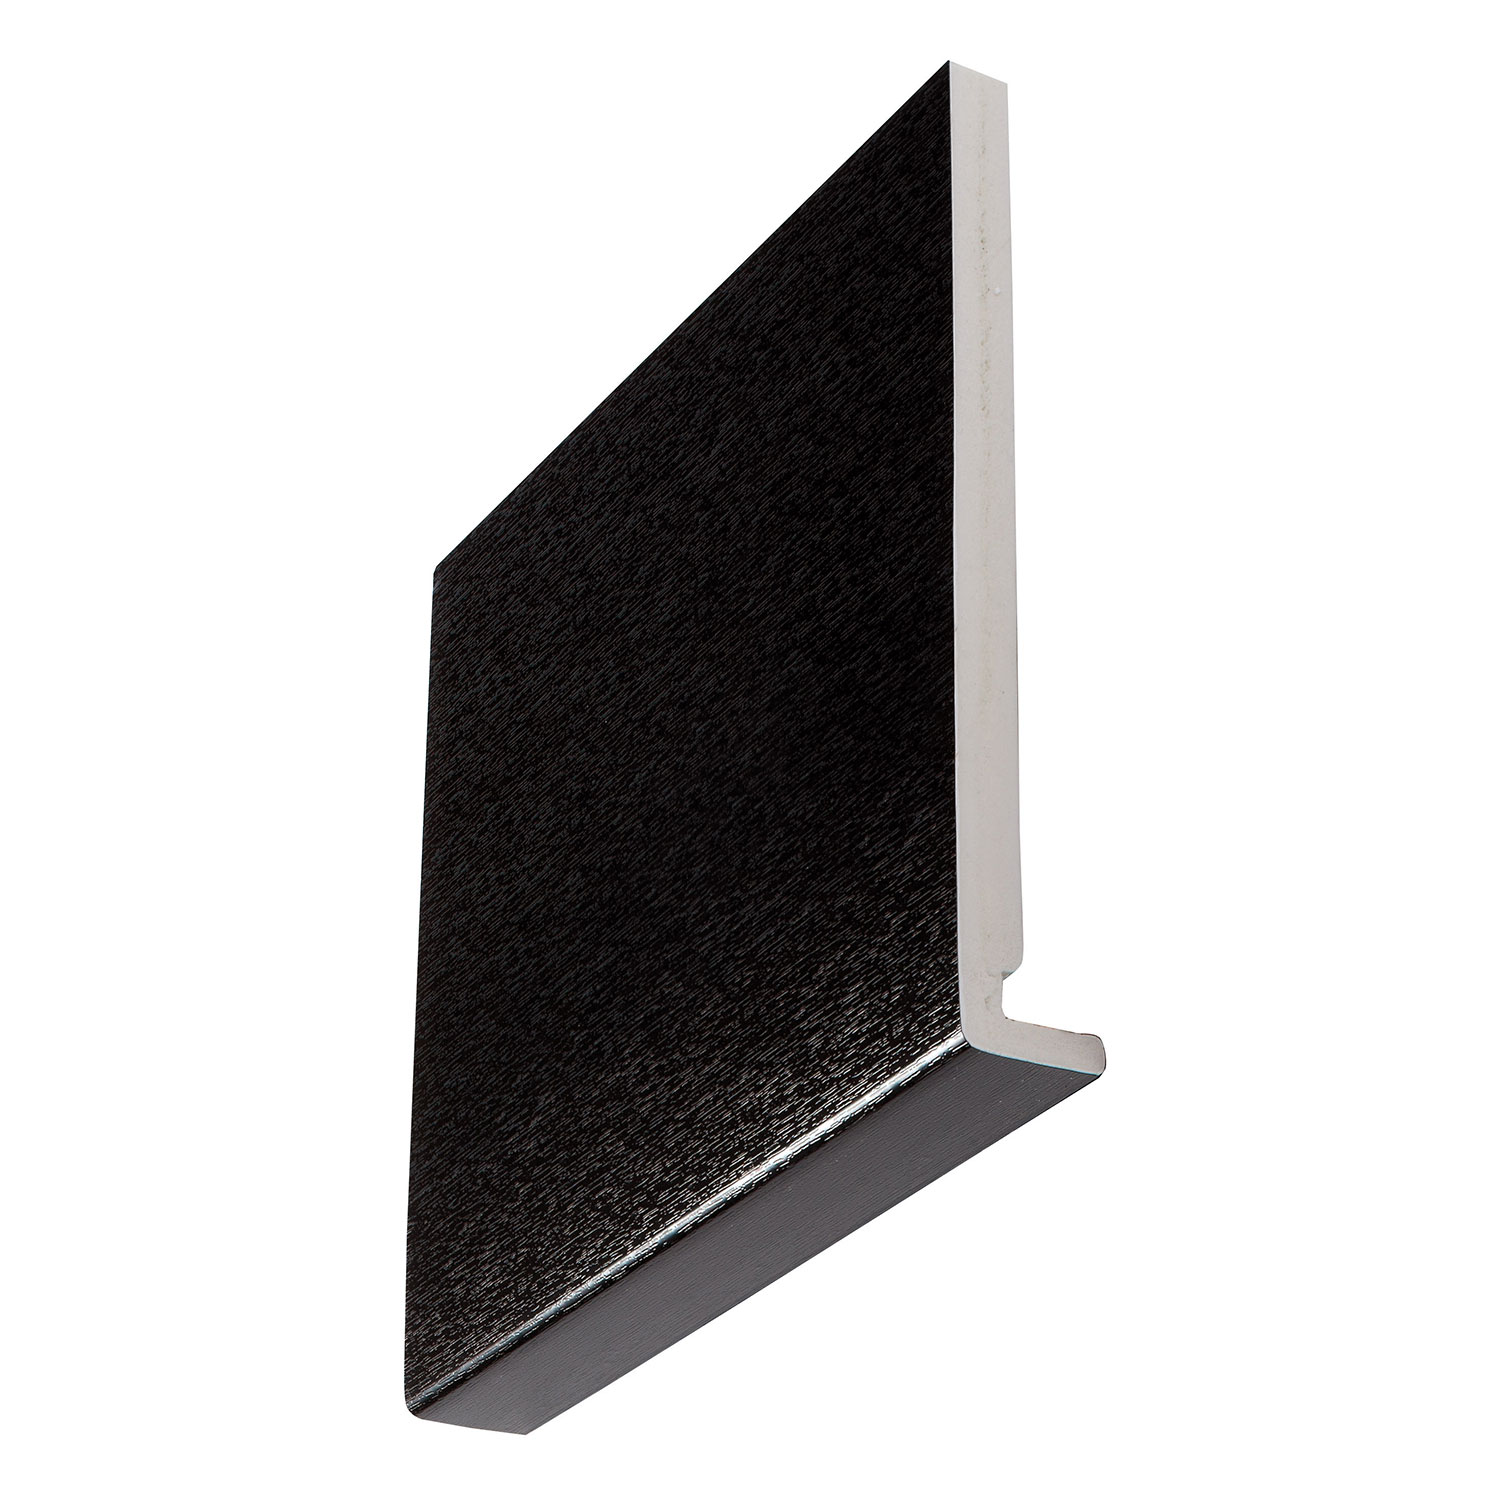 16mm Square Black Ash Fascia Boards